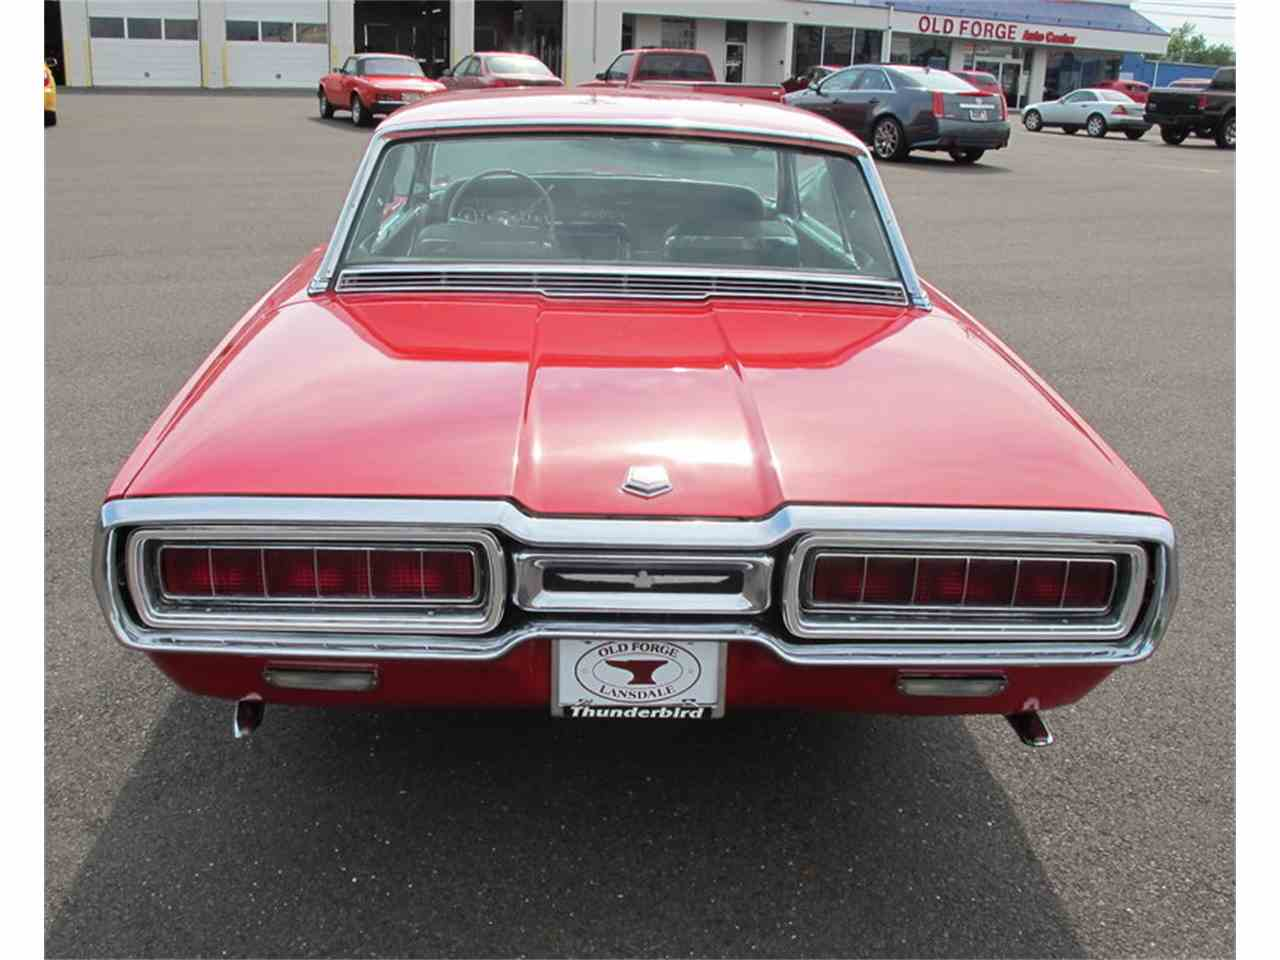 Large Picture of Classic '65 Ford Thunderbird Offered by Old Forge Motorcars - LULR